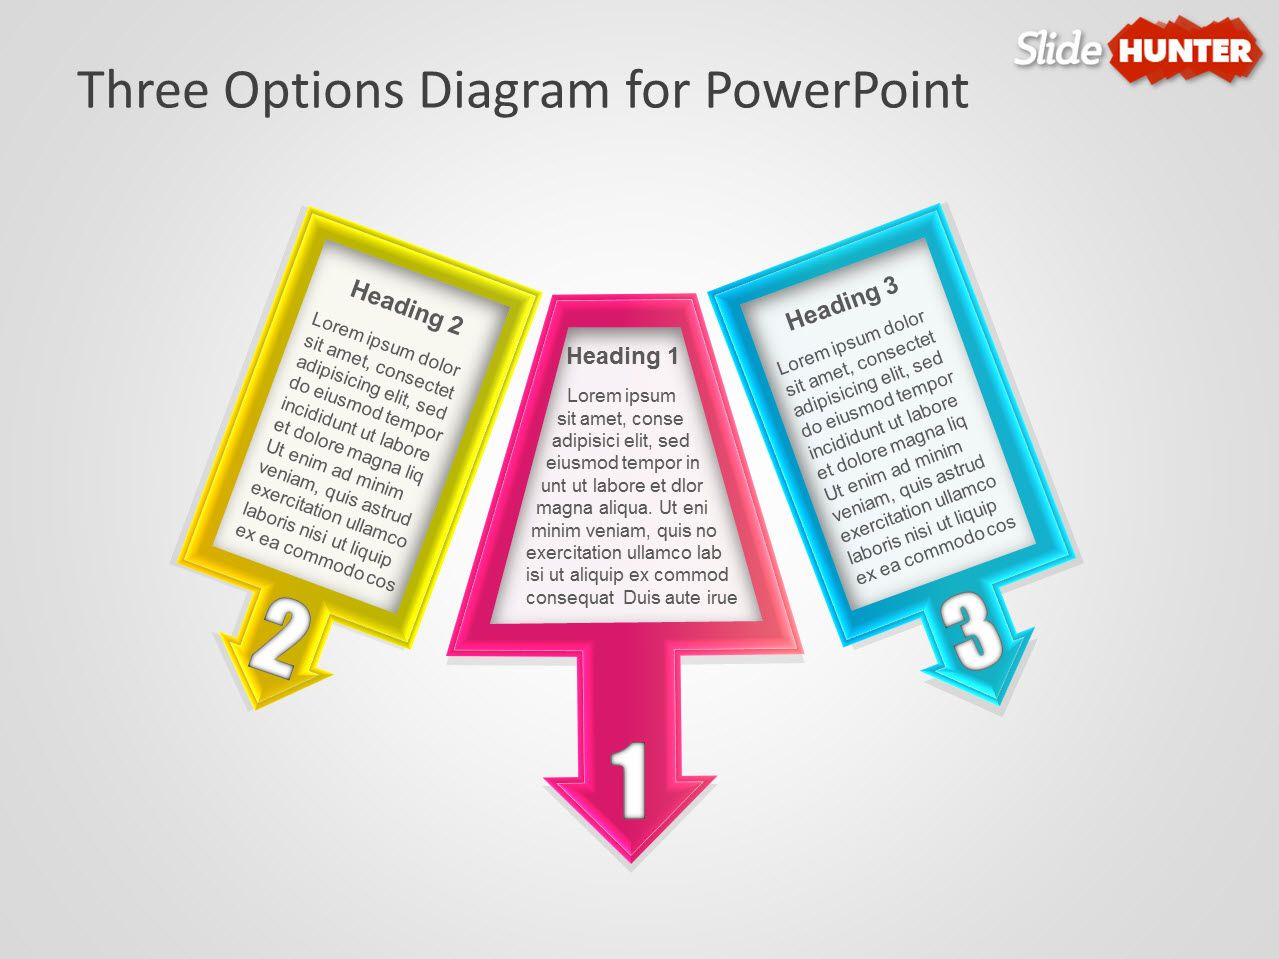 Three Options Diagram for PowerPoint Presentations